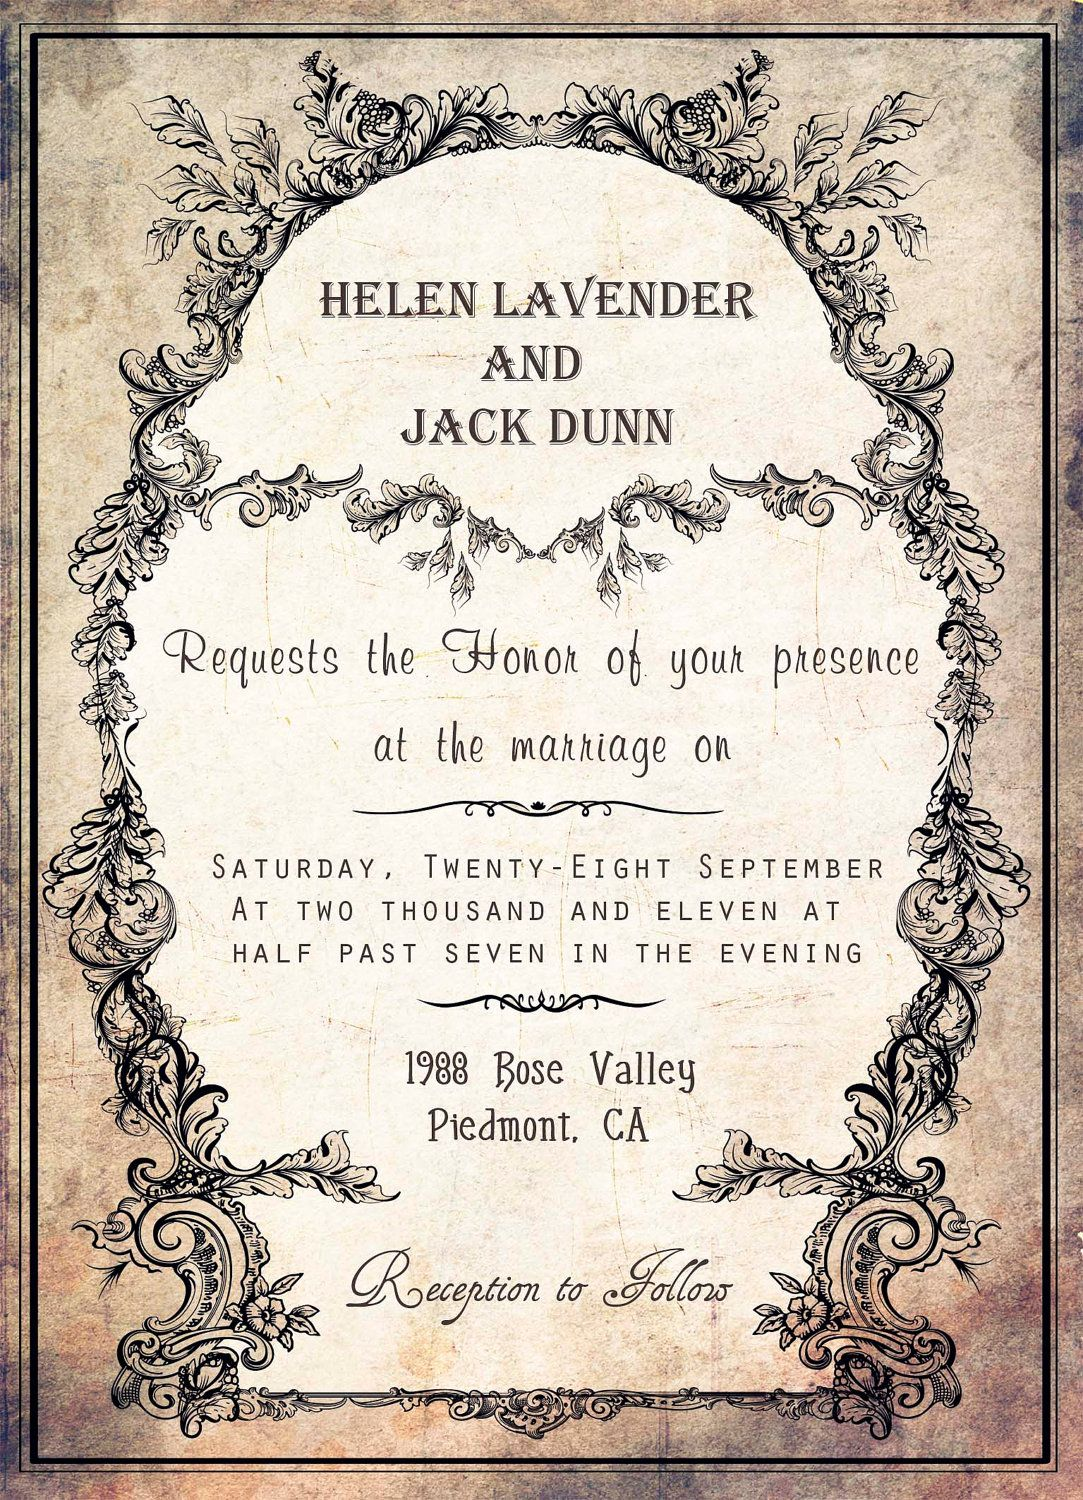 Invitation Wording Christian Vintage Wedding Invitation Templates - Wedding invitation templates: free electronic wedding invitations templates